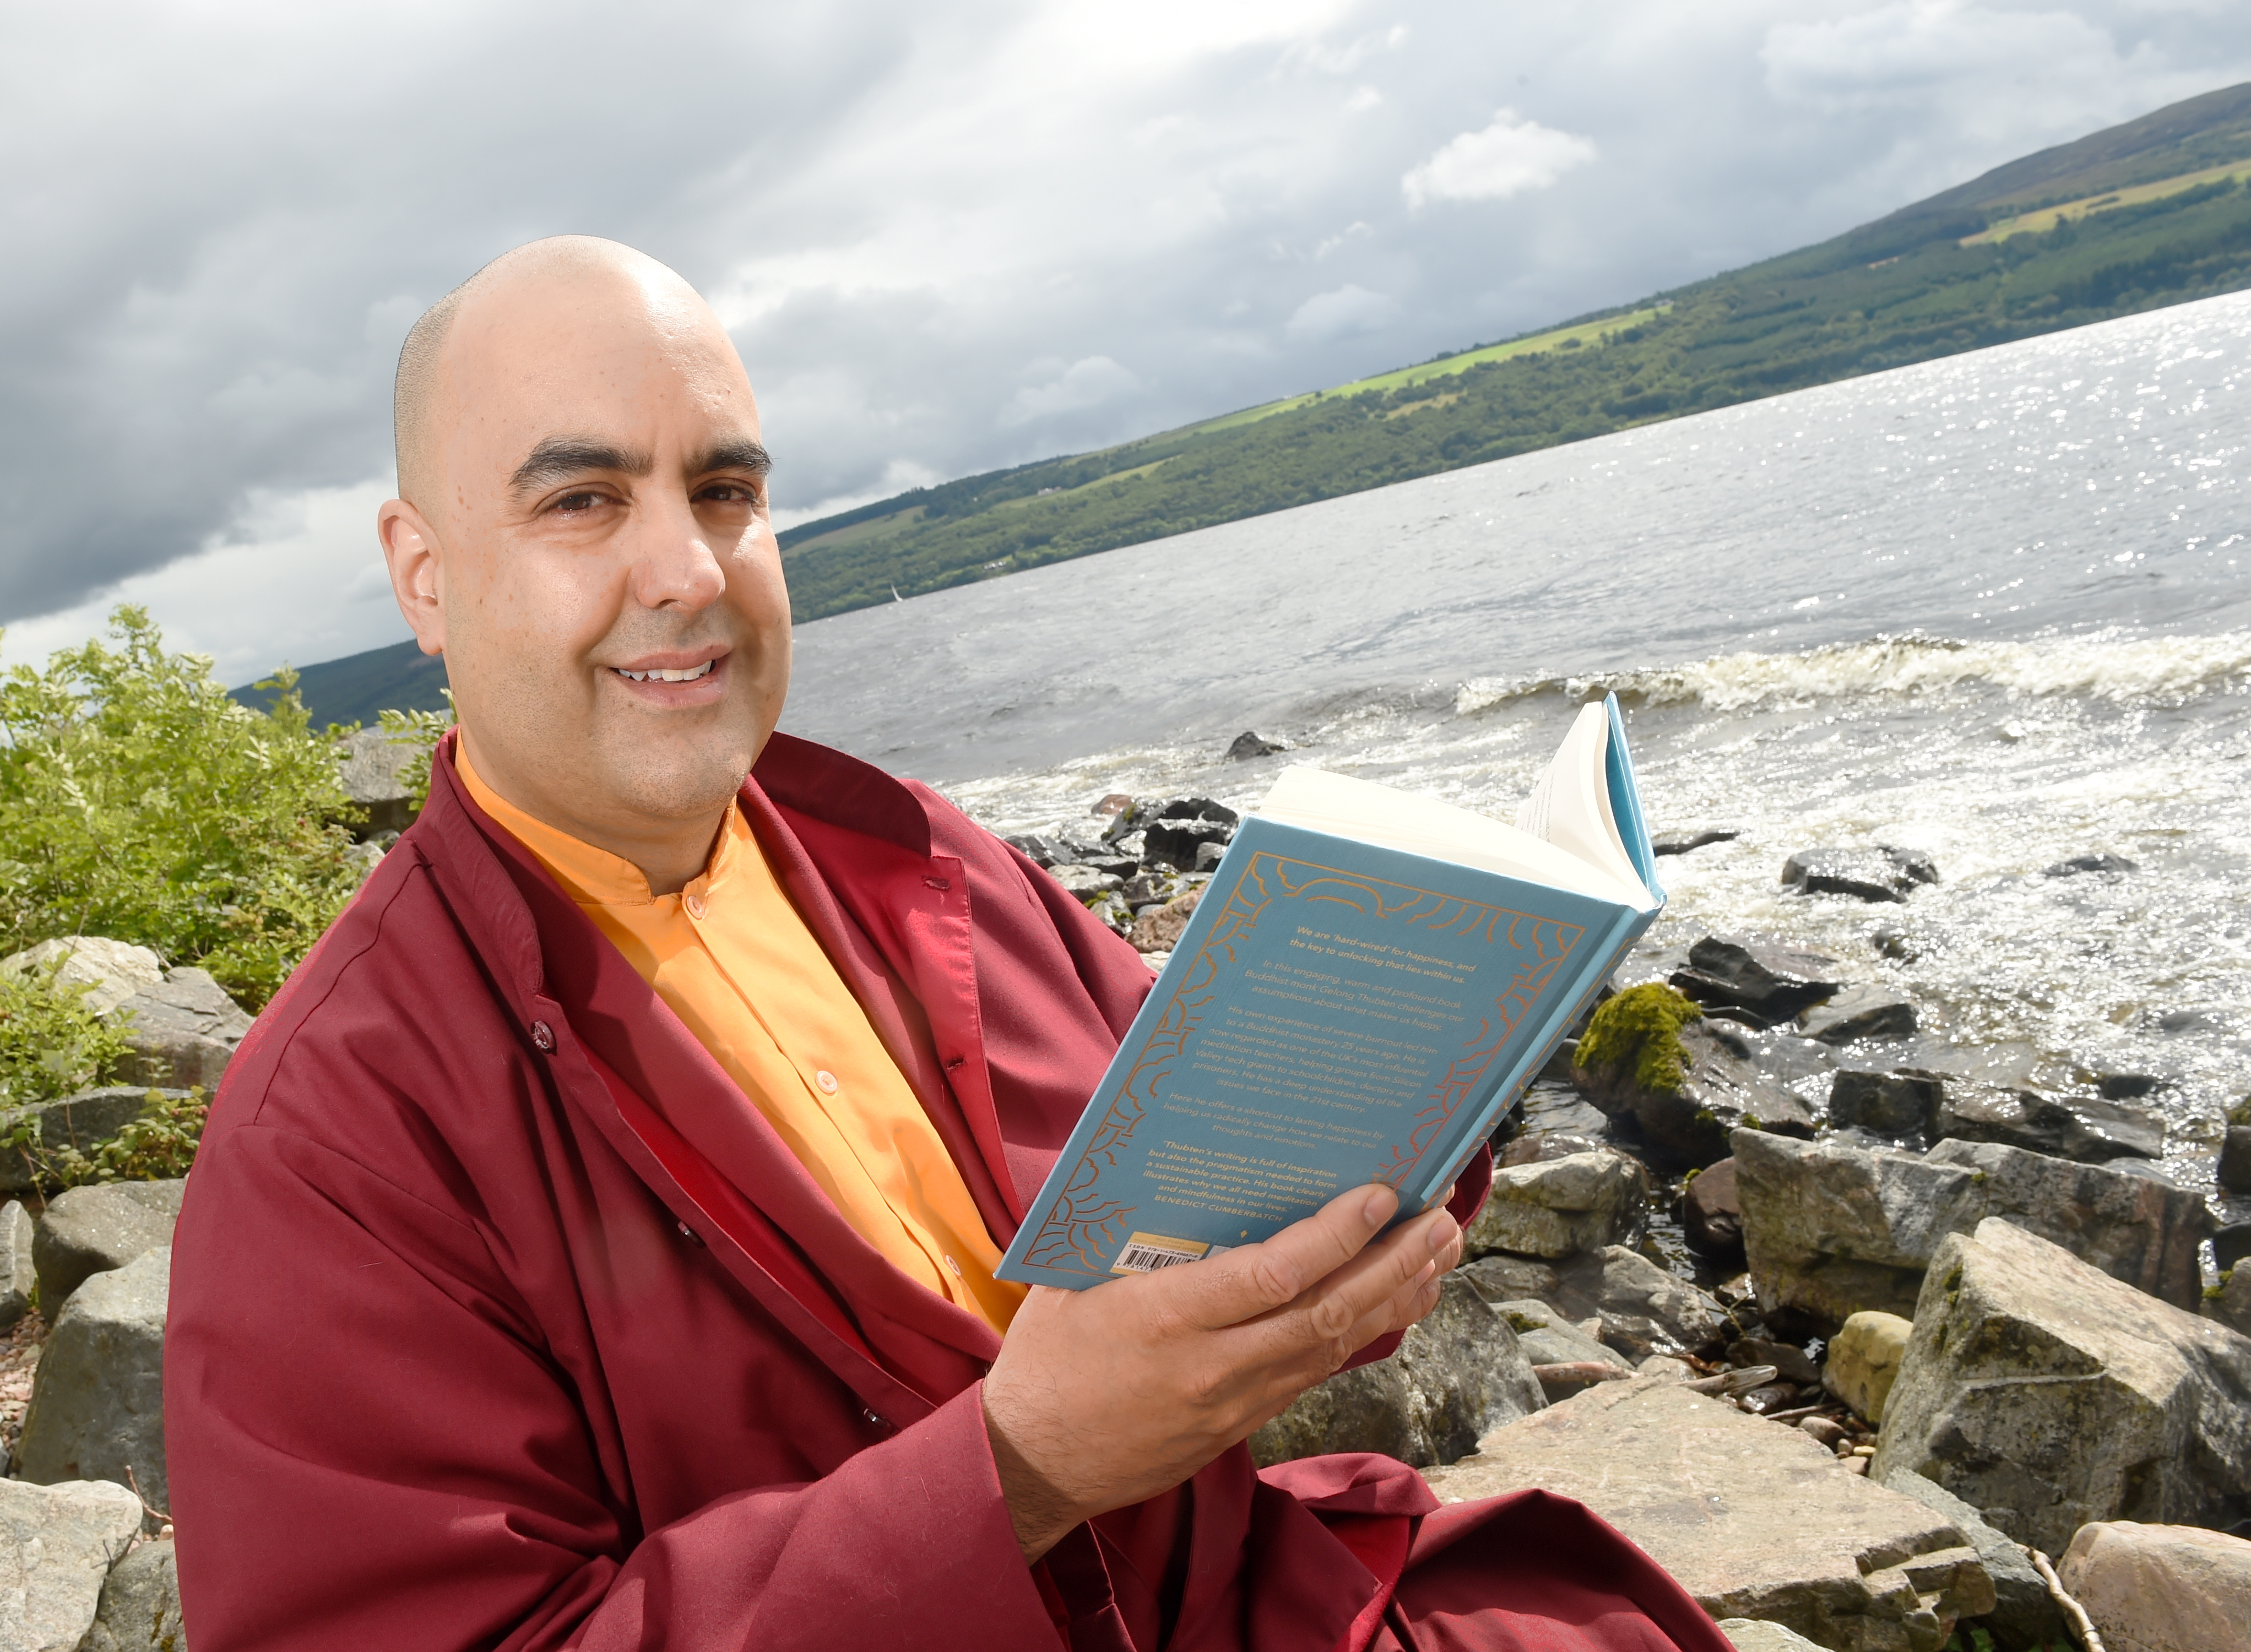 Author Gelong Thubten with his new memoir A Monk's Guide to Happiness on the shores of Loch Ness.